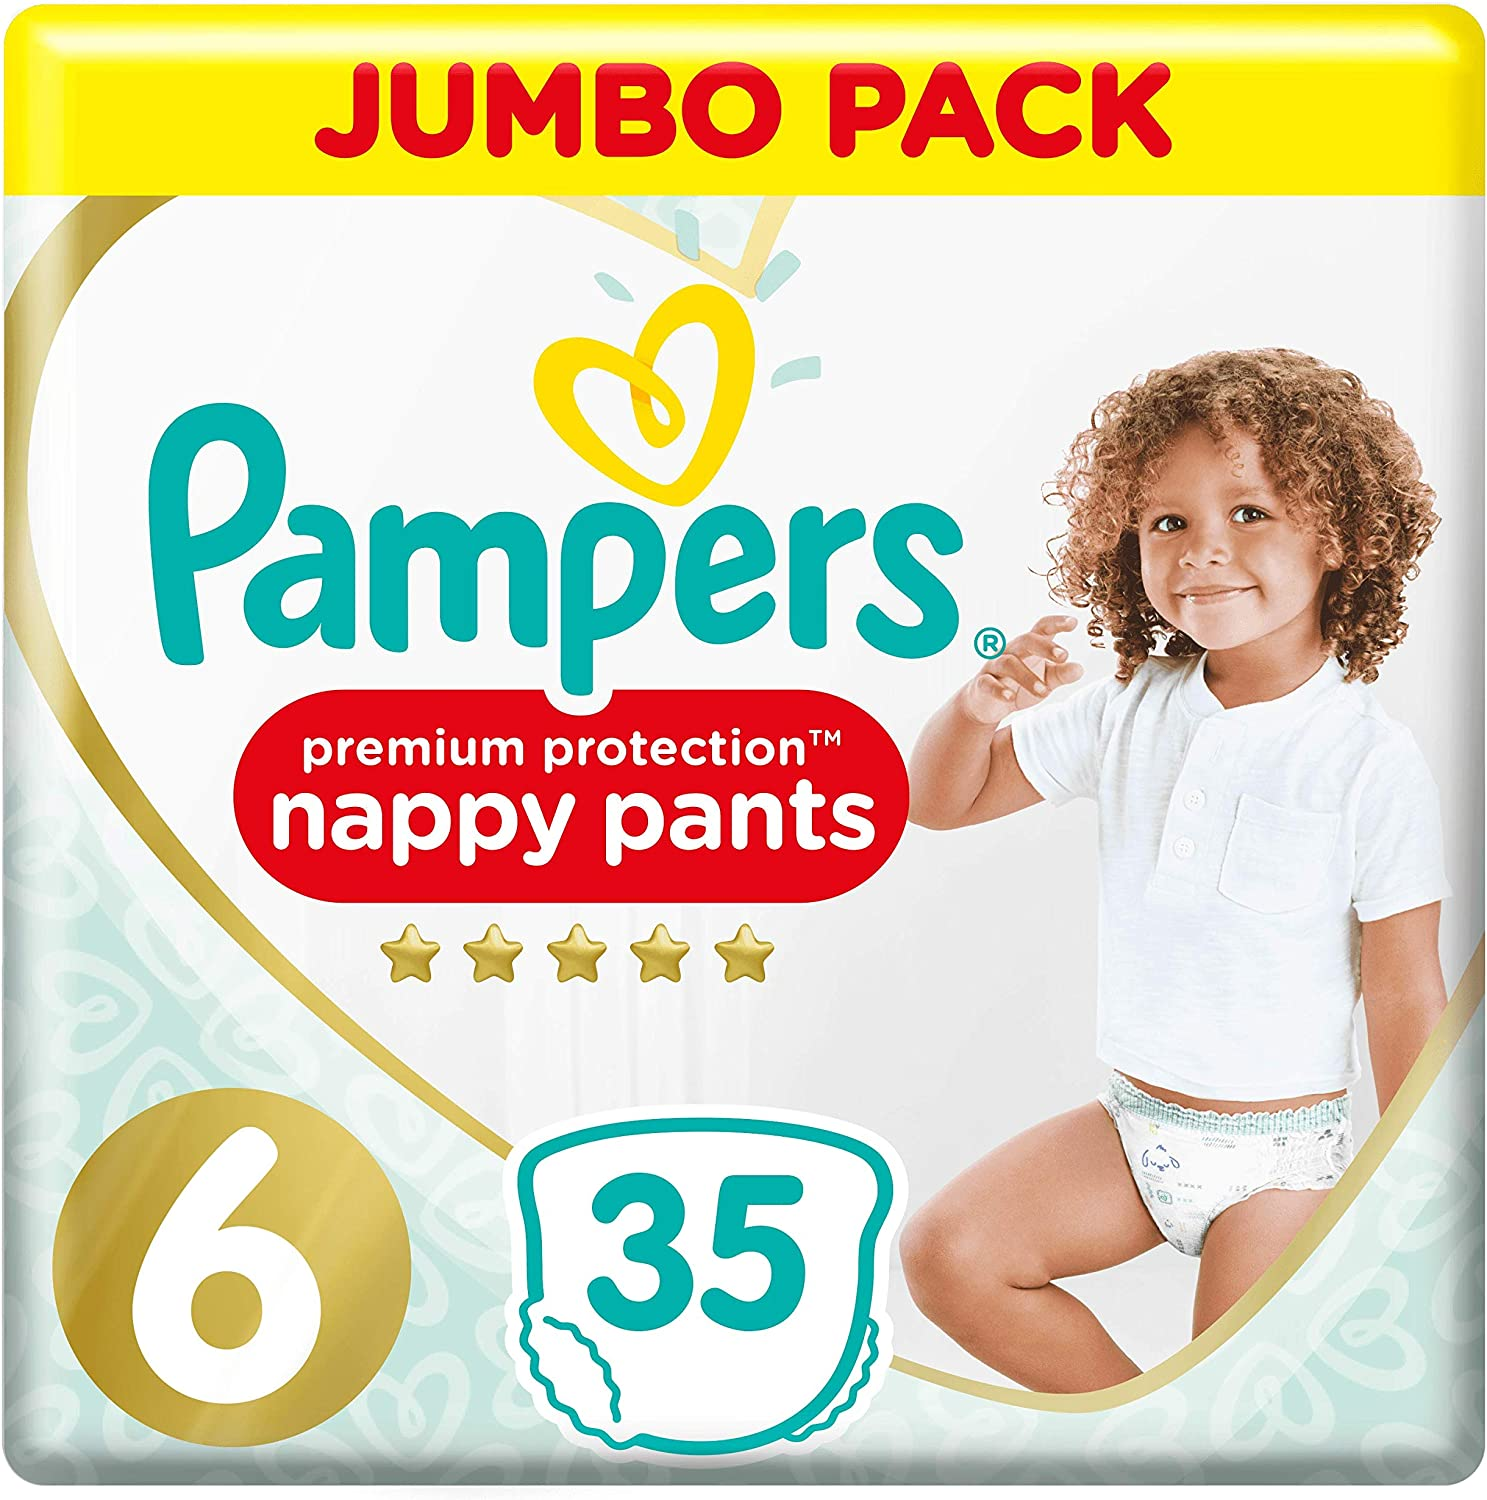 9-15kg Jumbo Pack 47 Nappy Pants Pampers Premium Protection Nappy Pants Size 4